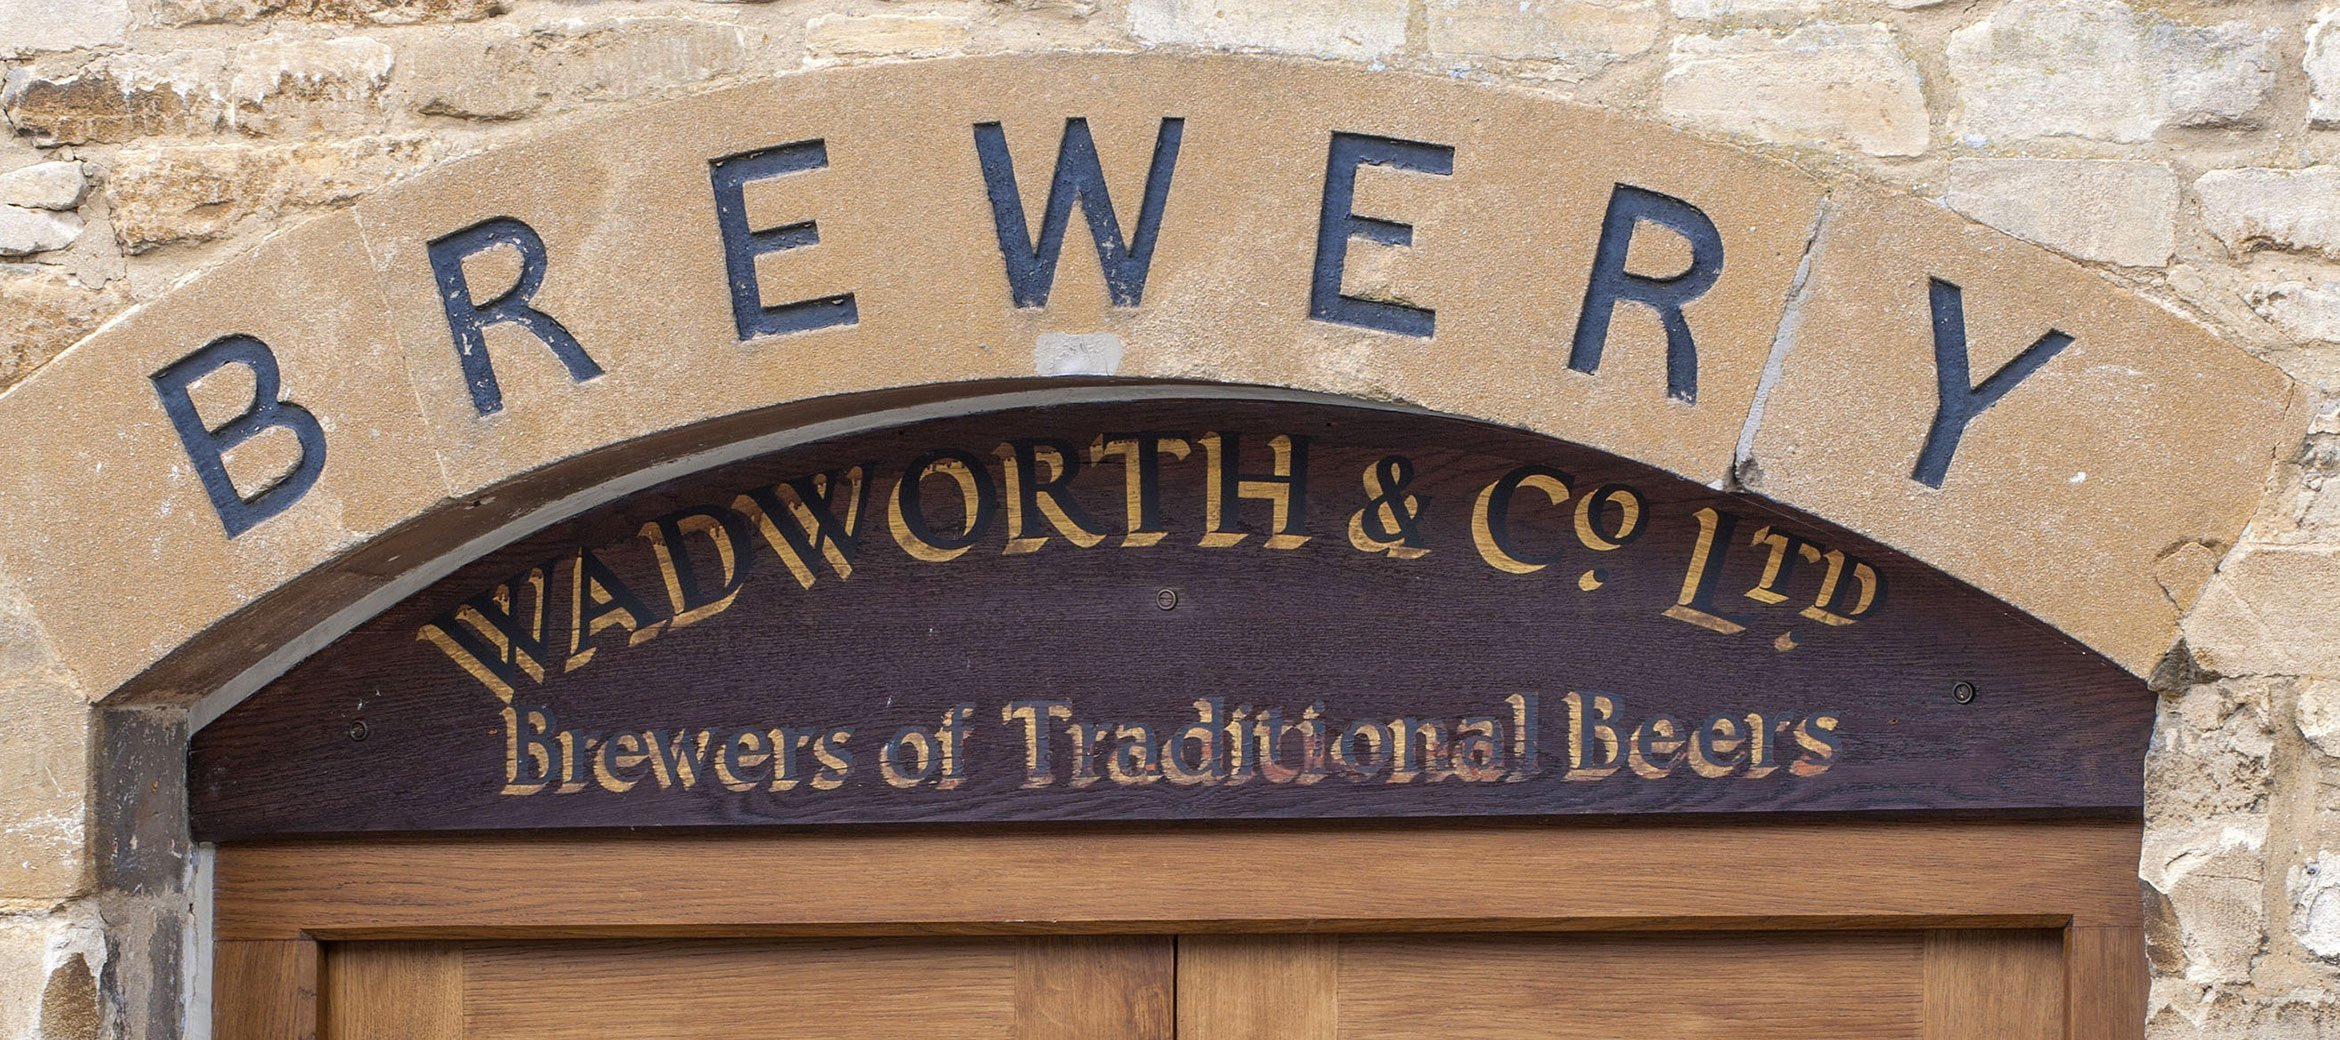 the-brewery-burford-cotswold-cottage